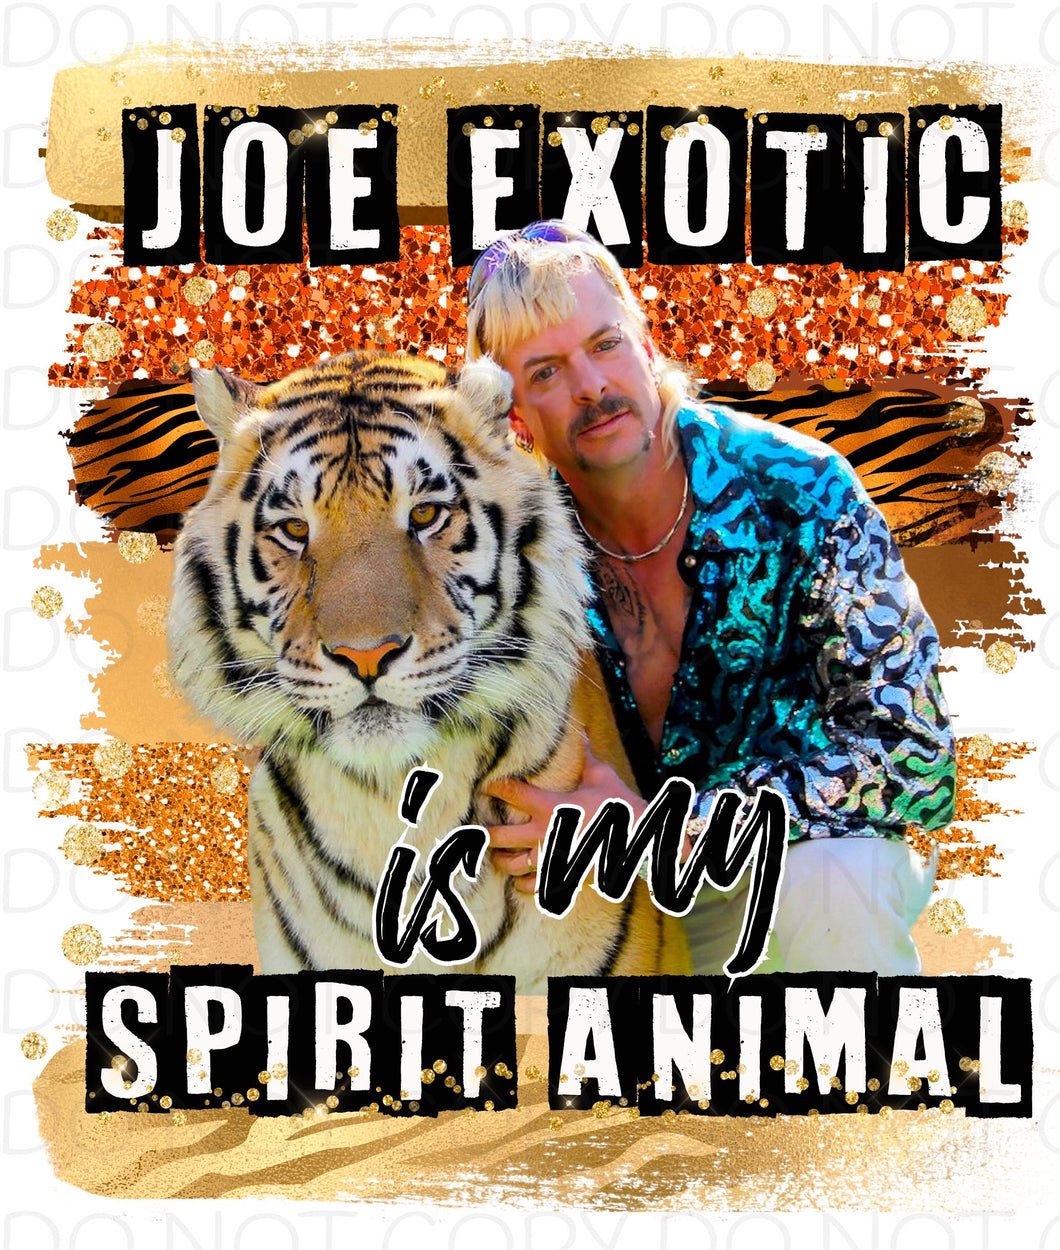 Joe Exotic is my spirit animal - Dye Sub Heat Transfer Sheet